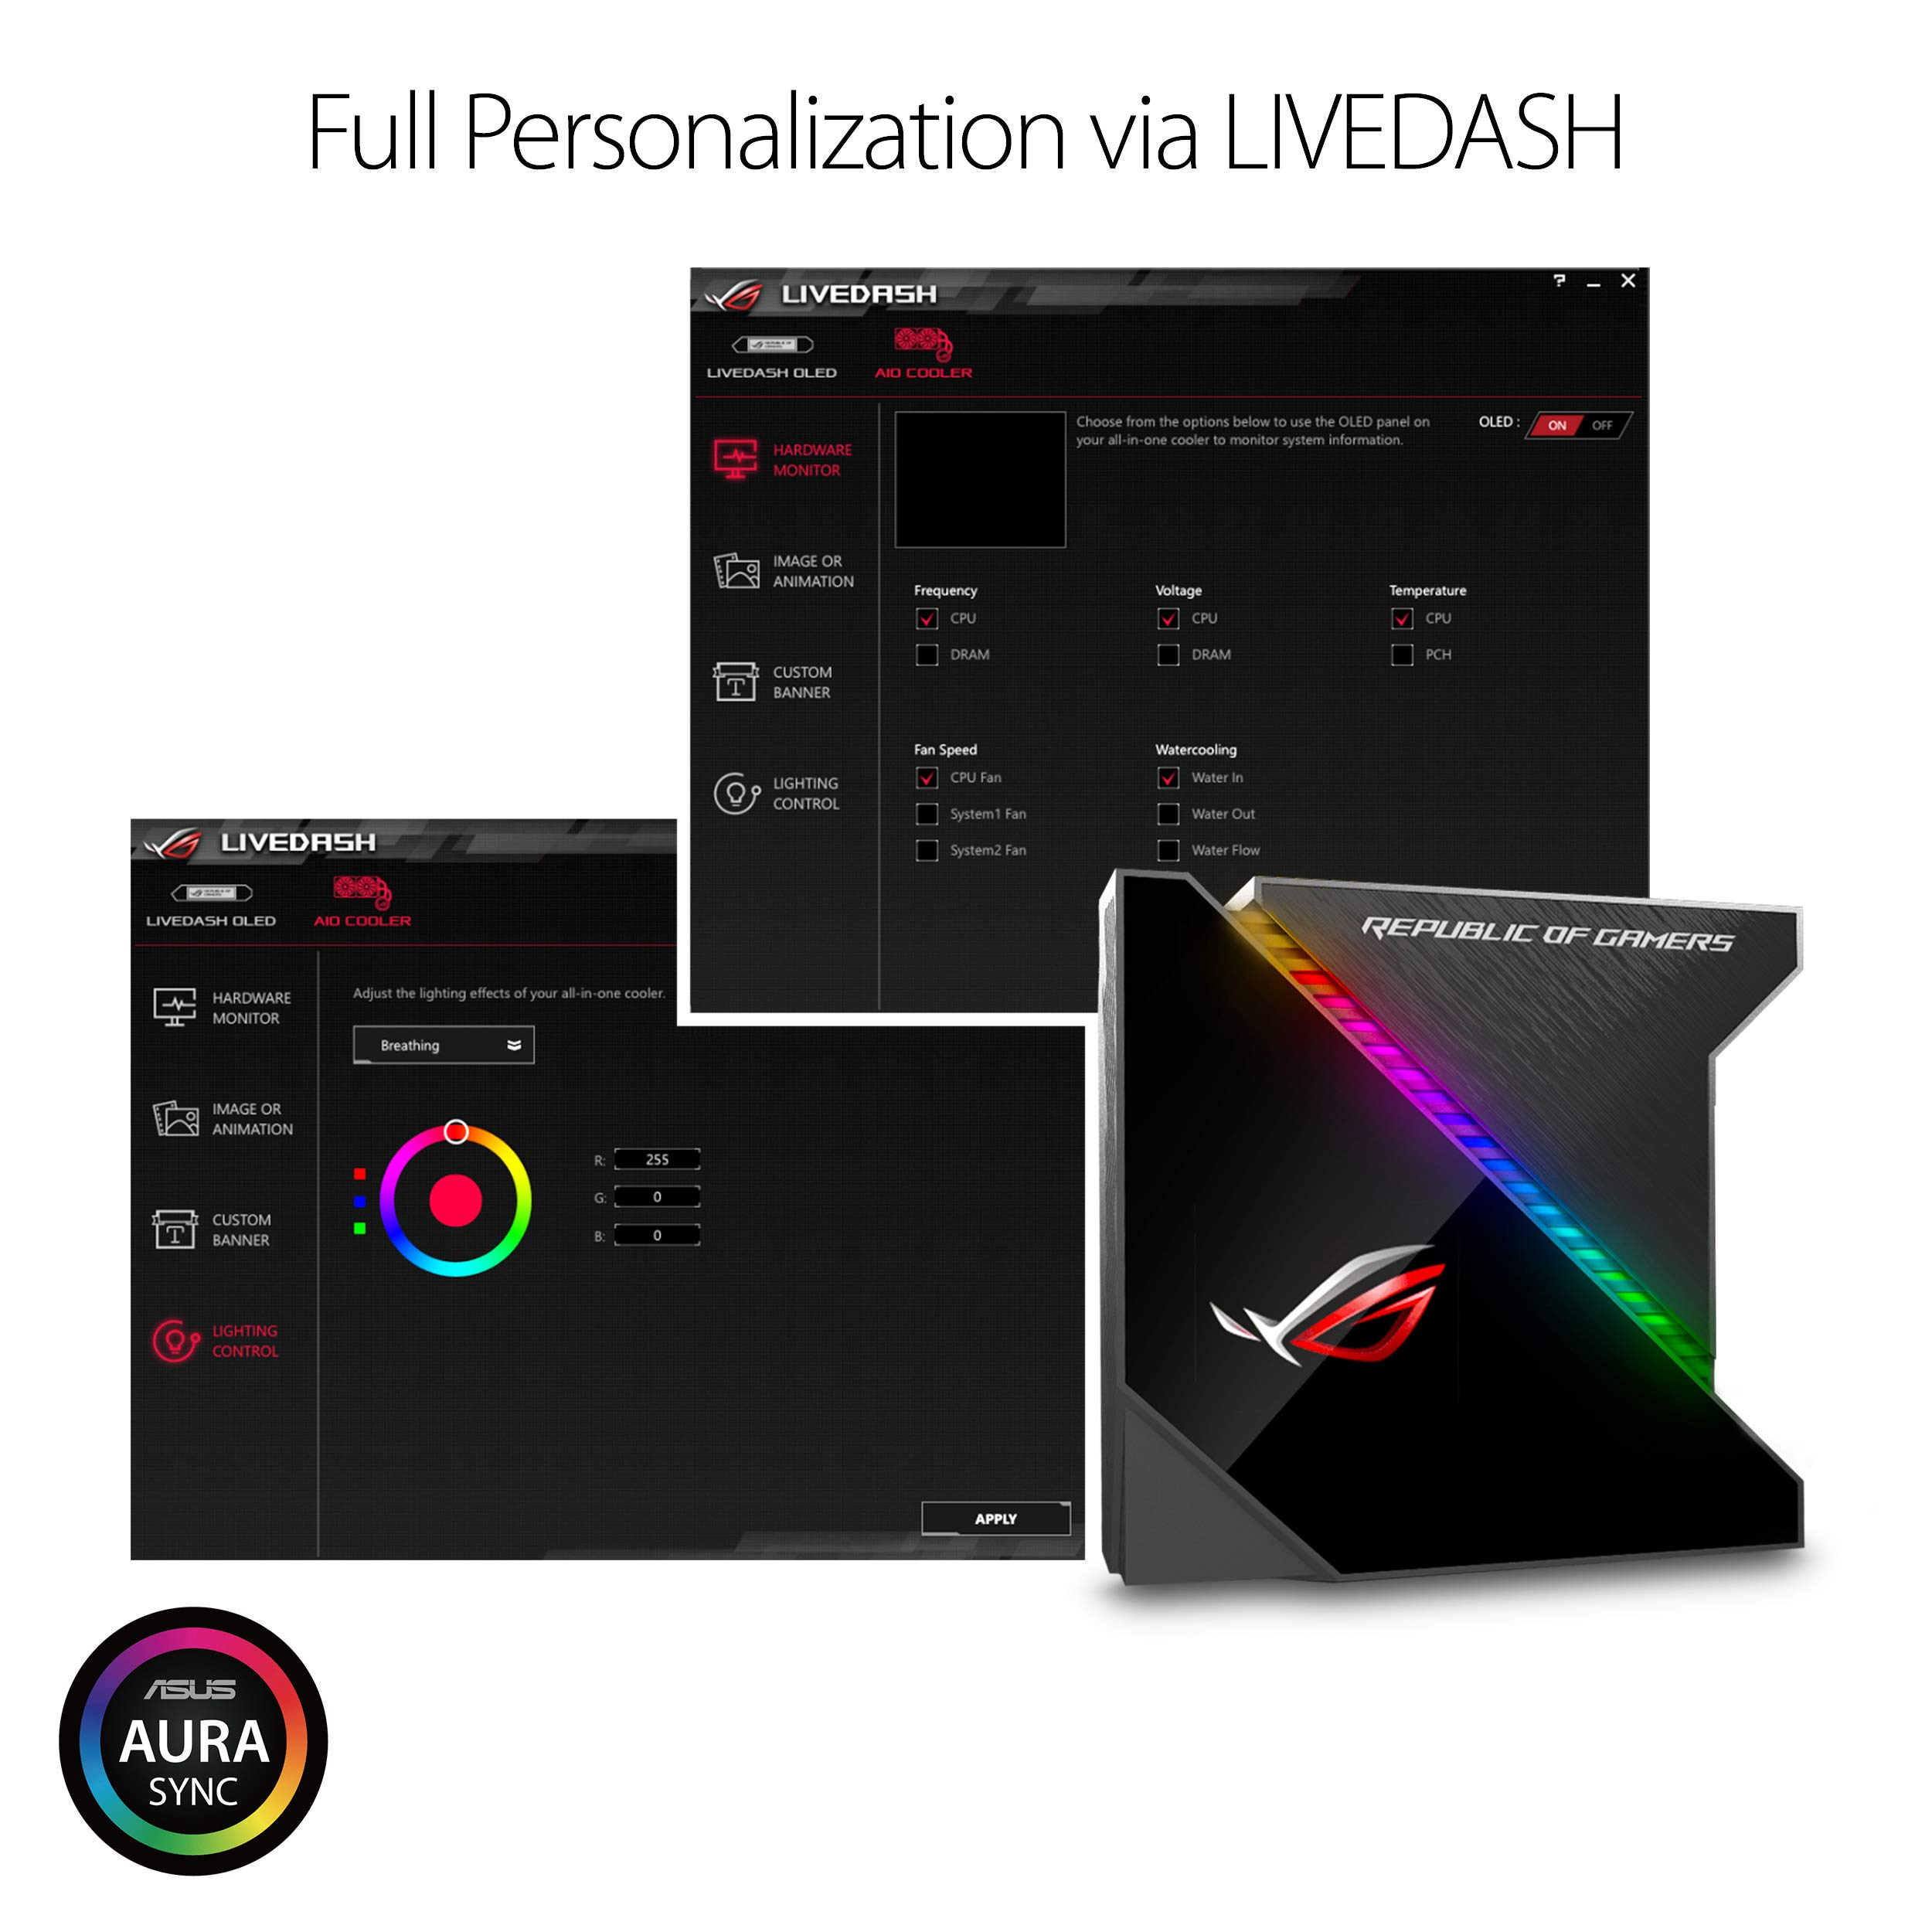 ASUS ROG Ryujin 240 RGB AIO Liquid CPU Cooler 240mm Radiator (Dual 120mm 4-pin Noctua iPPC PWM Fans) with LIVEDASH OLED Panel and FanXpert Controls by Asus (Image #4)